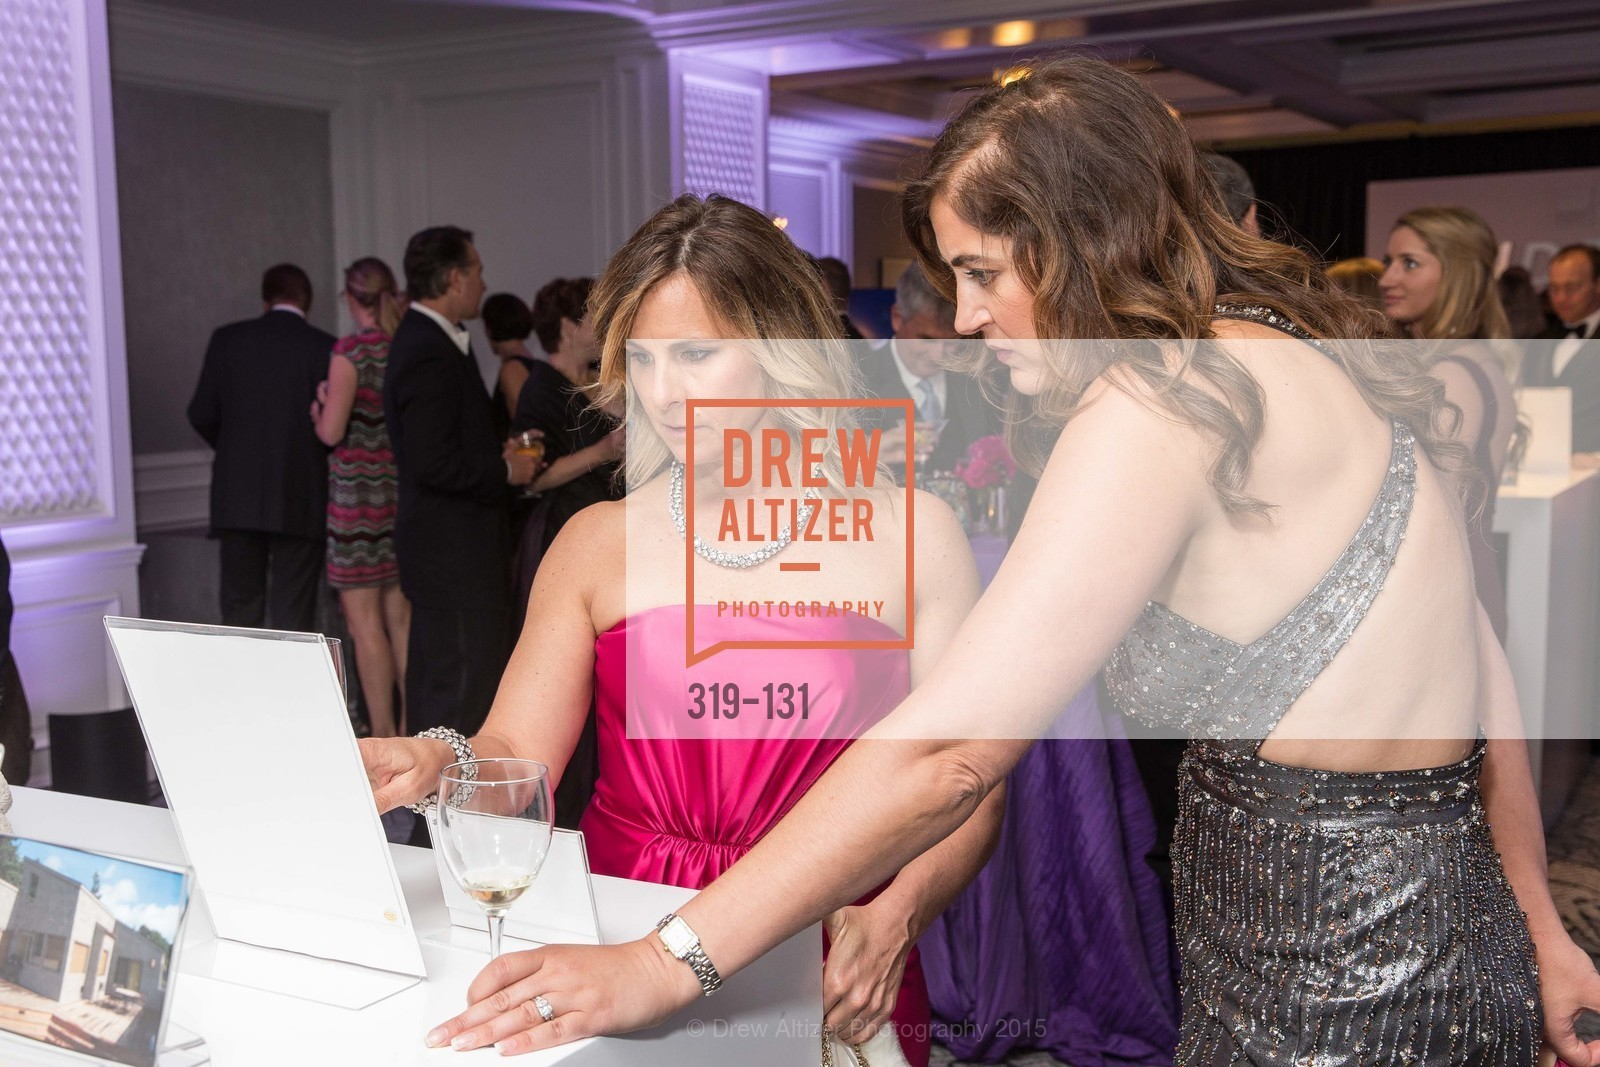 Carol Kopko, Christine Tozzi, JUVENILE DIABETES RESEARCH FOUNDATION  Hope Gala, The Ritz-Carlton, May 29th, 2015,Drew Altizer, Drew Altizer Photography, full-service agency, private events, San Francisco photographer, photographer california